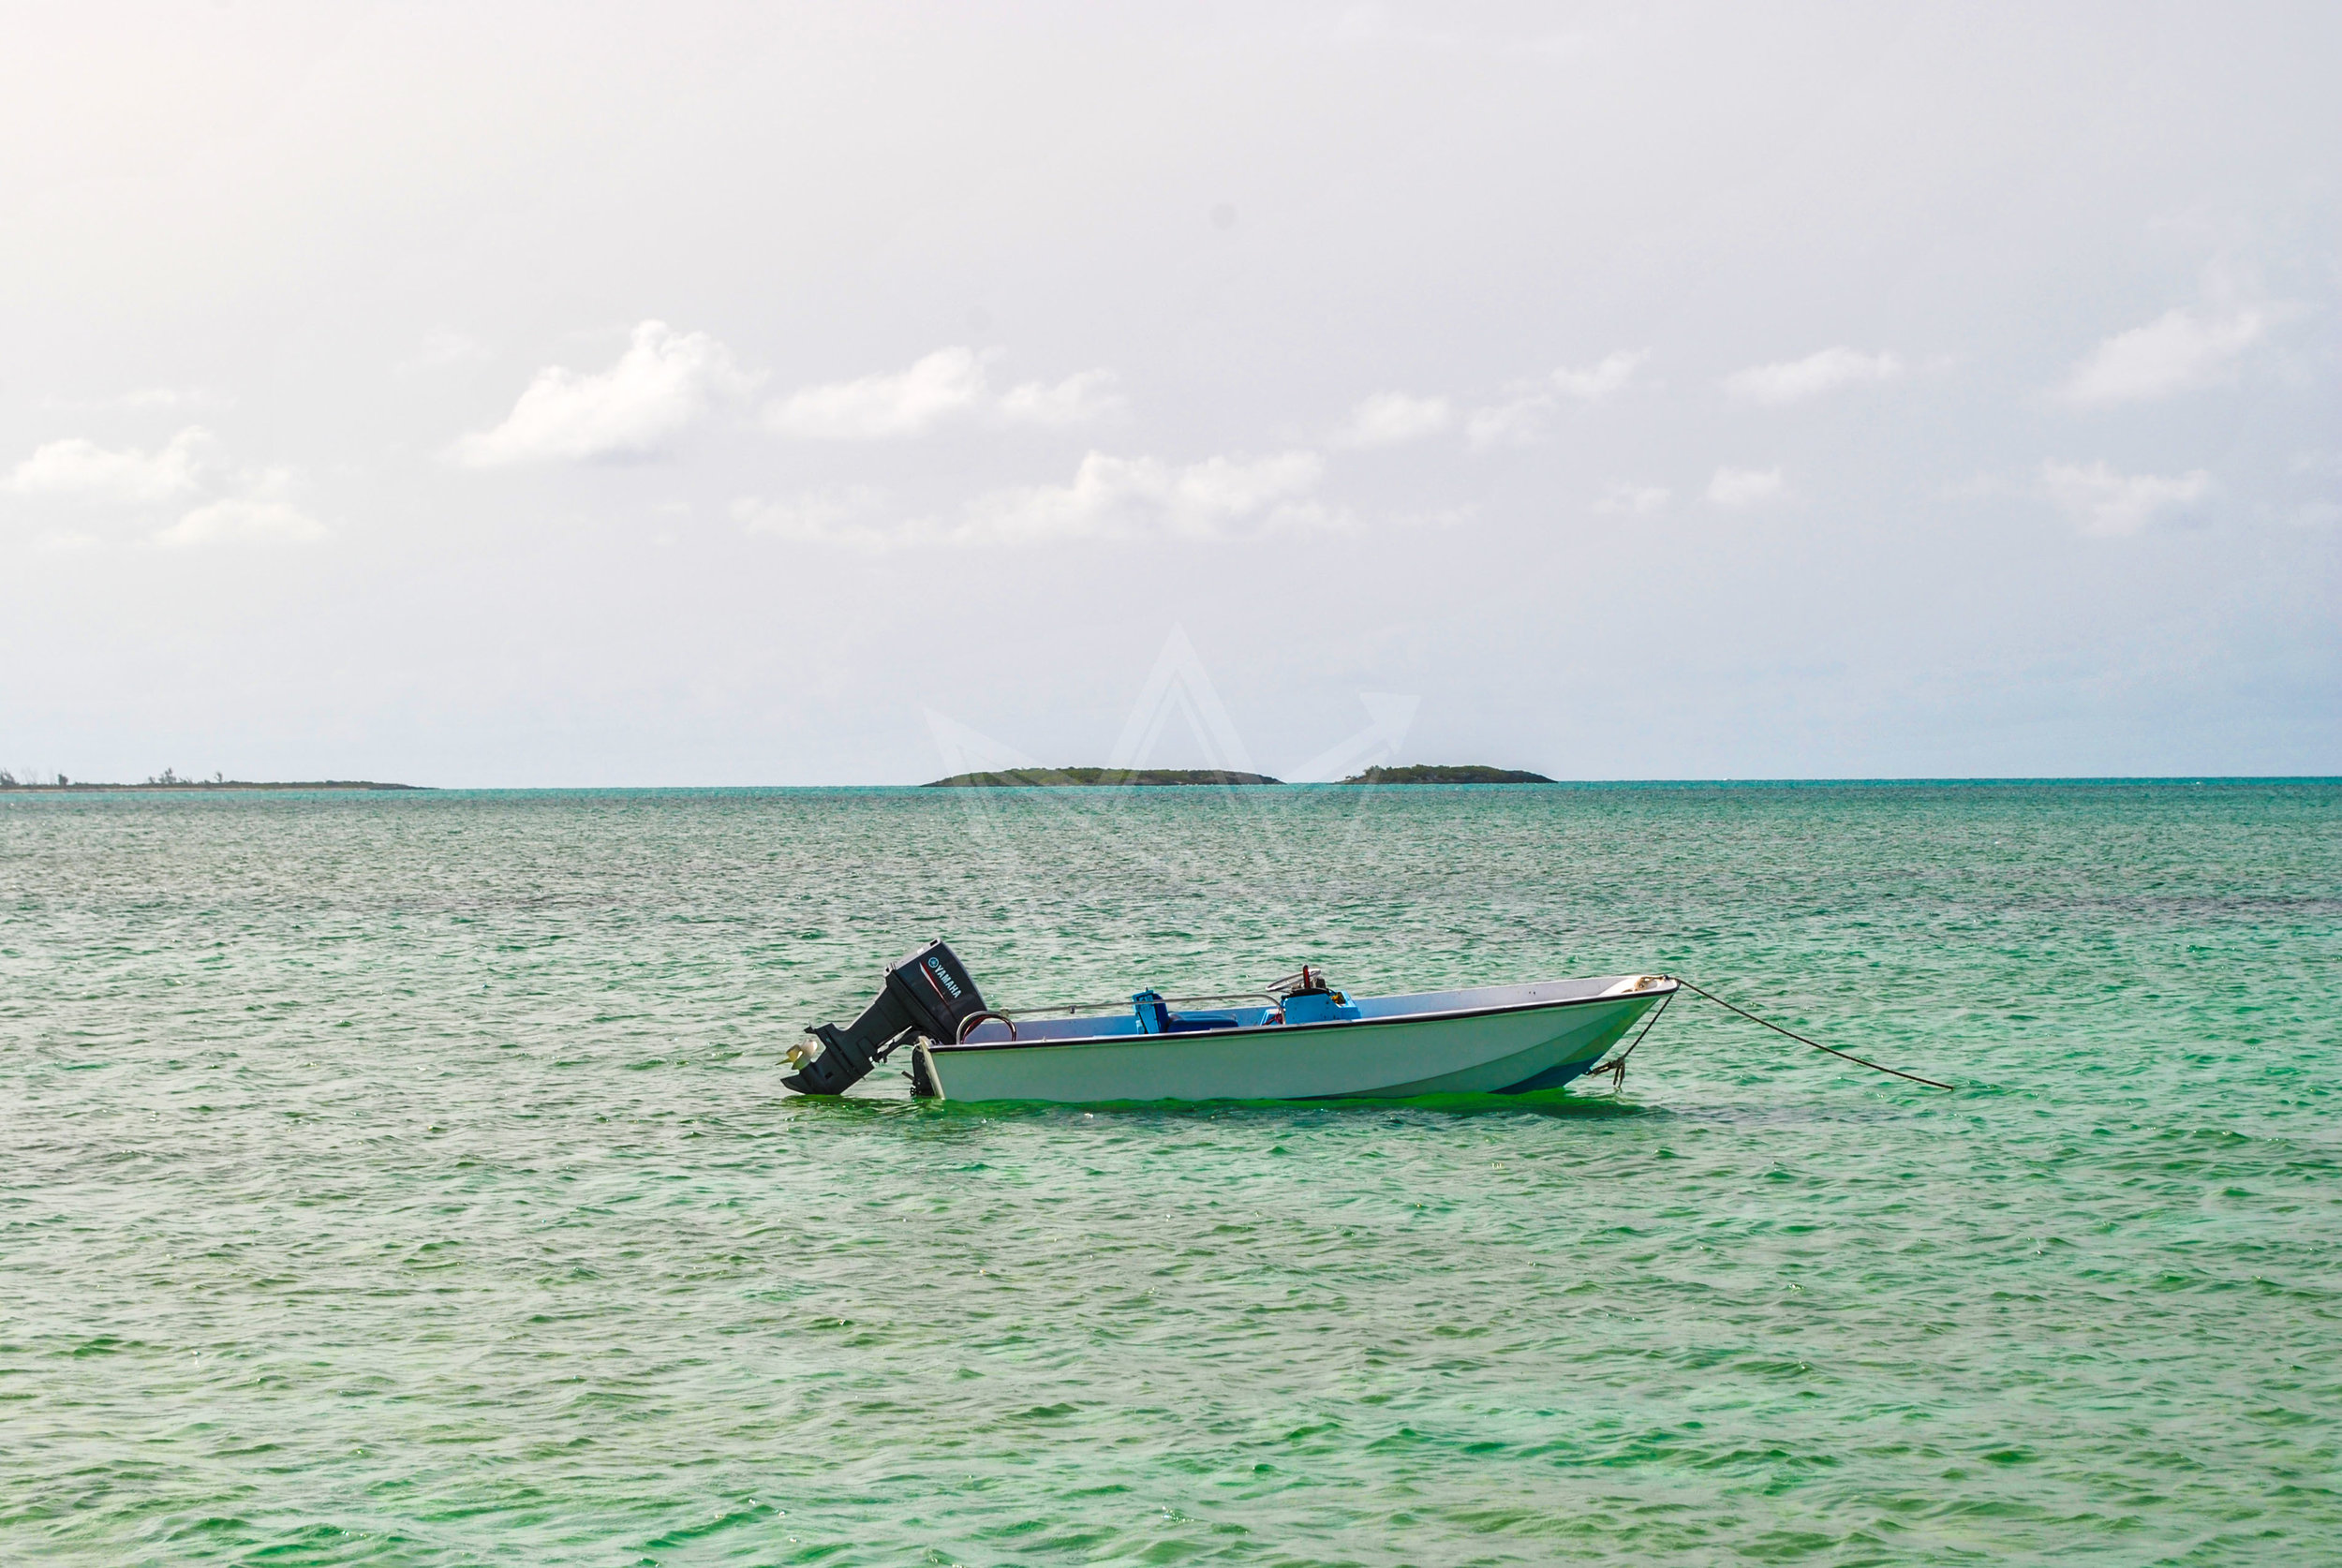 Boat Anchored off Shore in Major's Cay